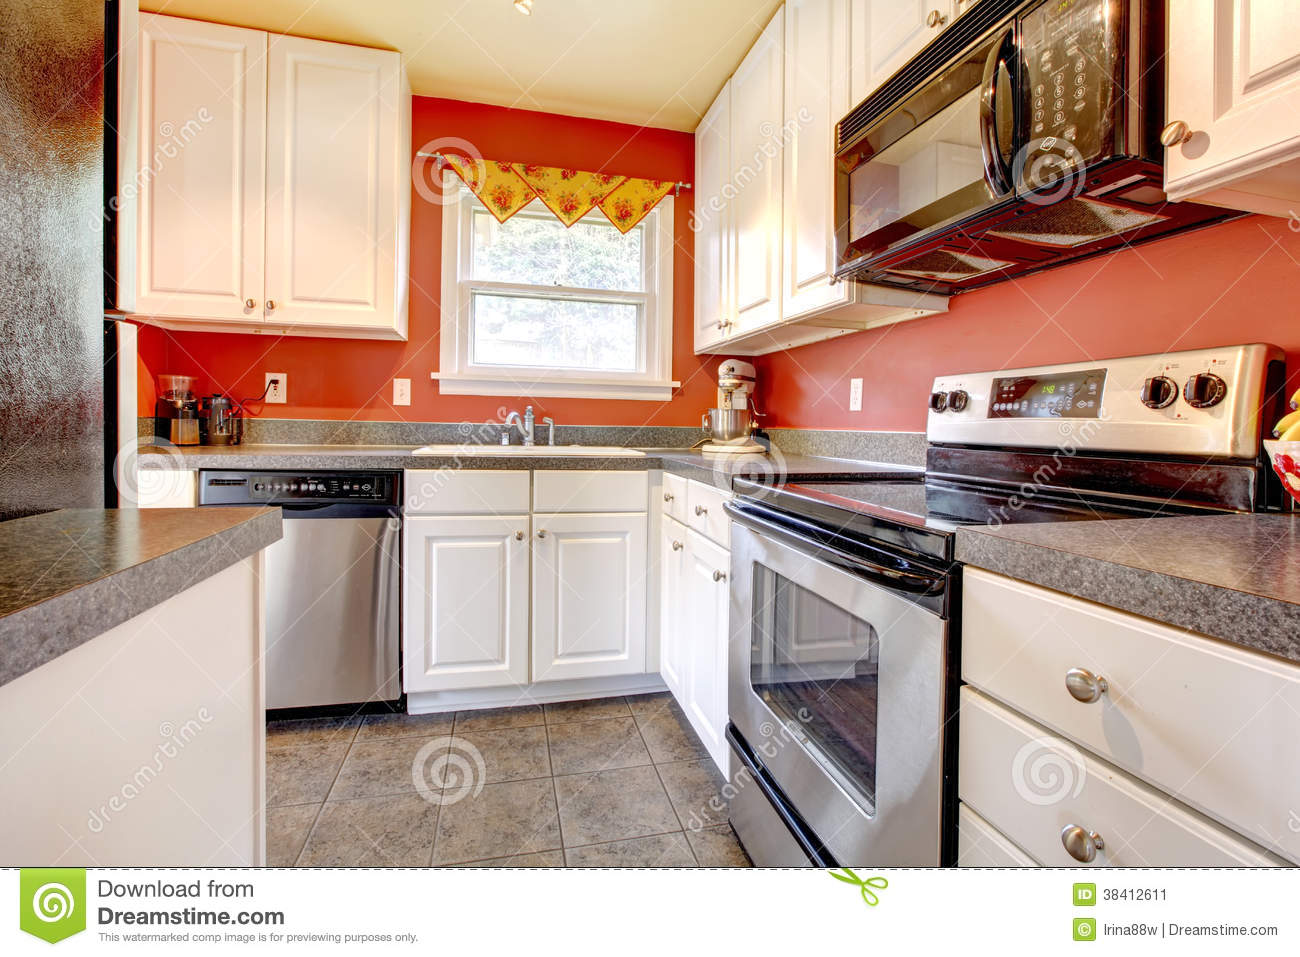 Red And White Kitchens Kitchen With White Cabinets And Red Walls Roselawnlutheran